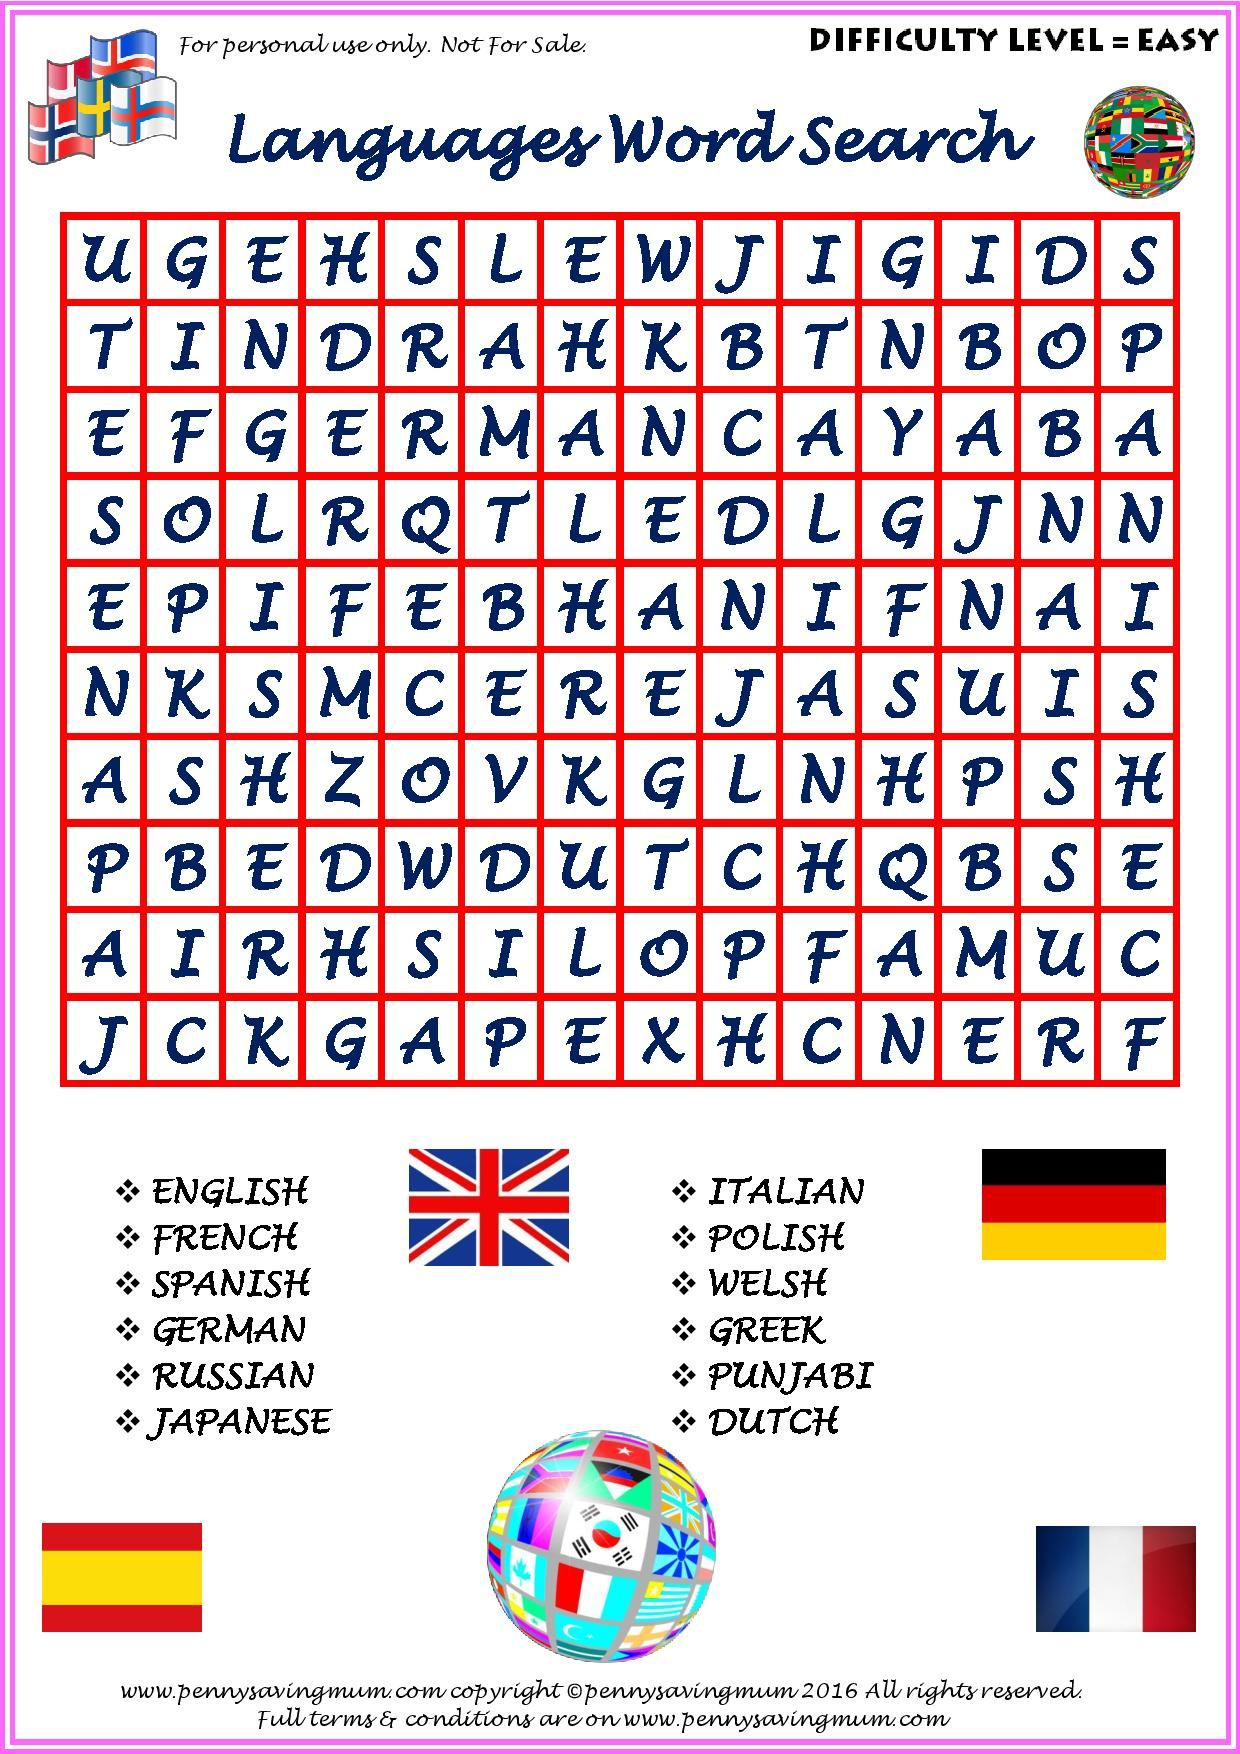 Word Search Languages Easy Version